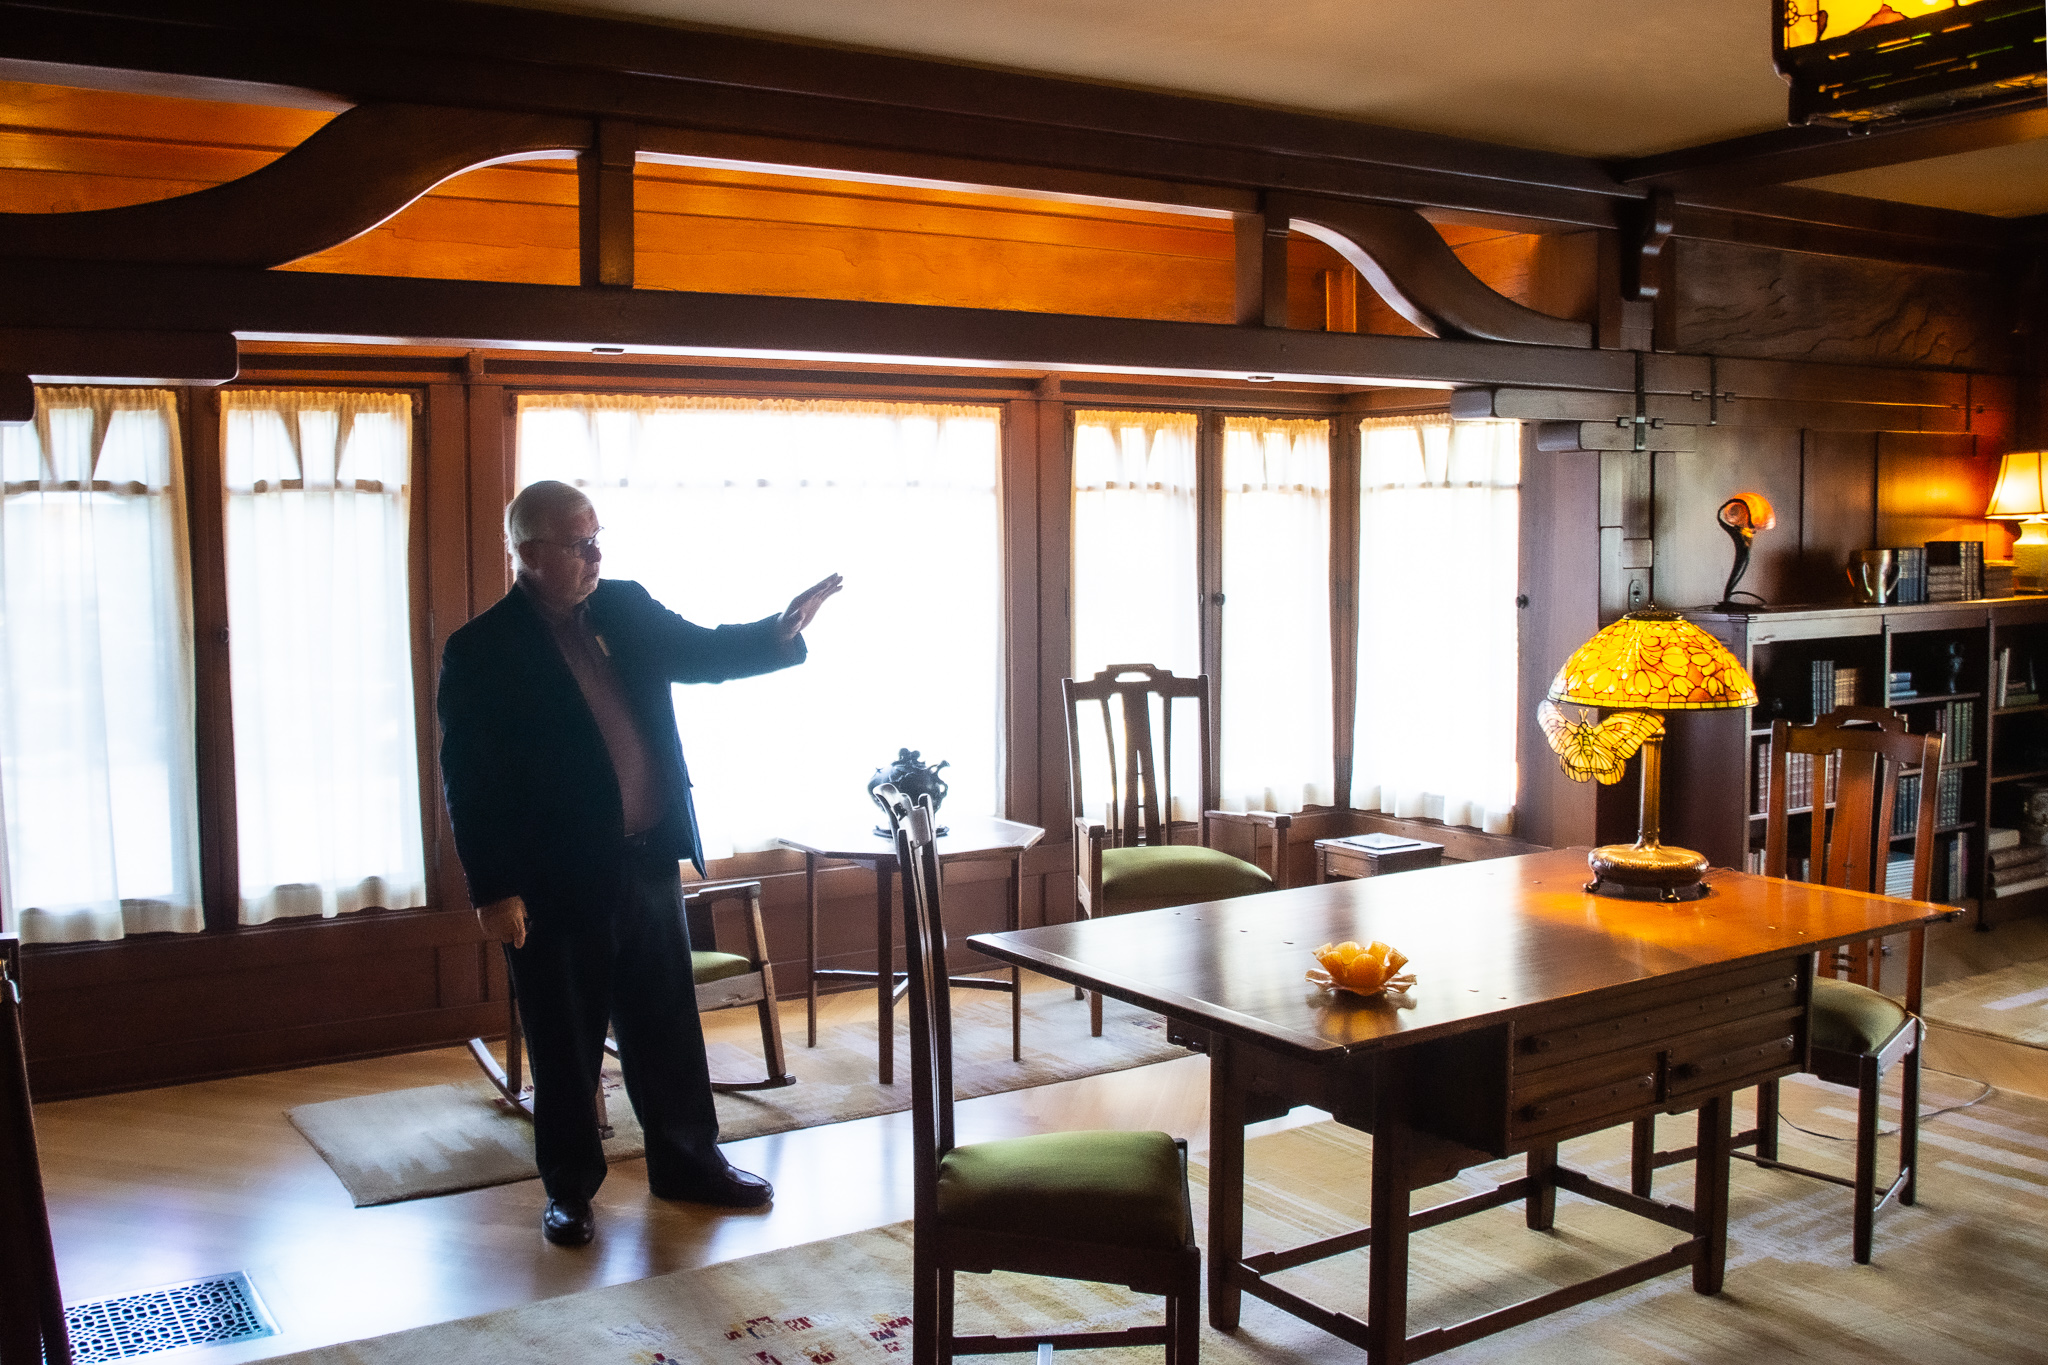 michael buss architect gamble house pasedina ca Tiffany Lamp